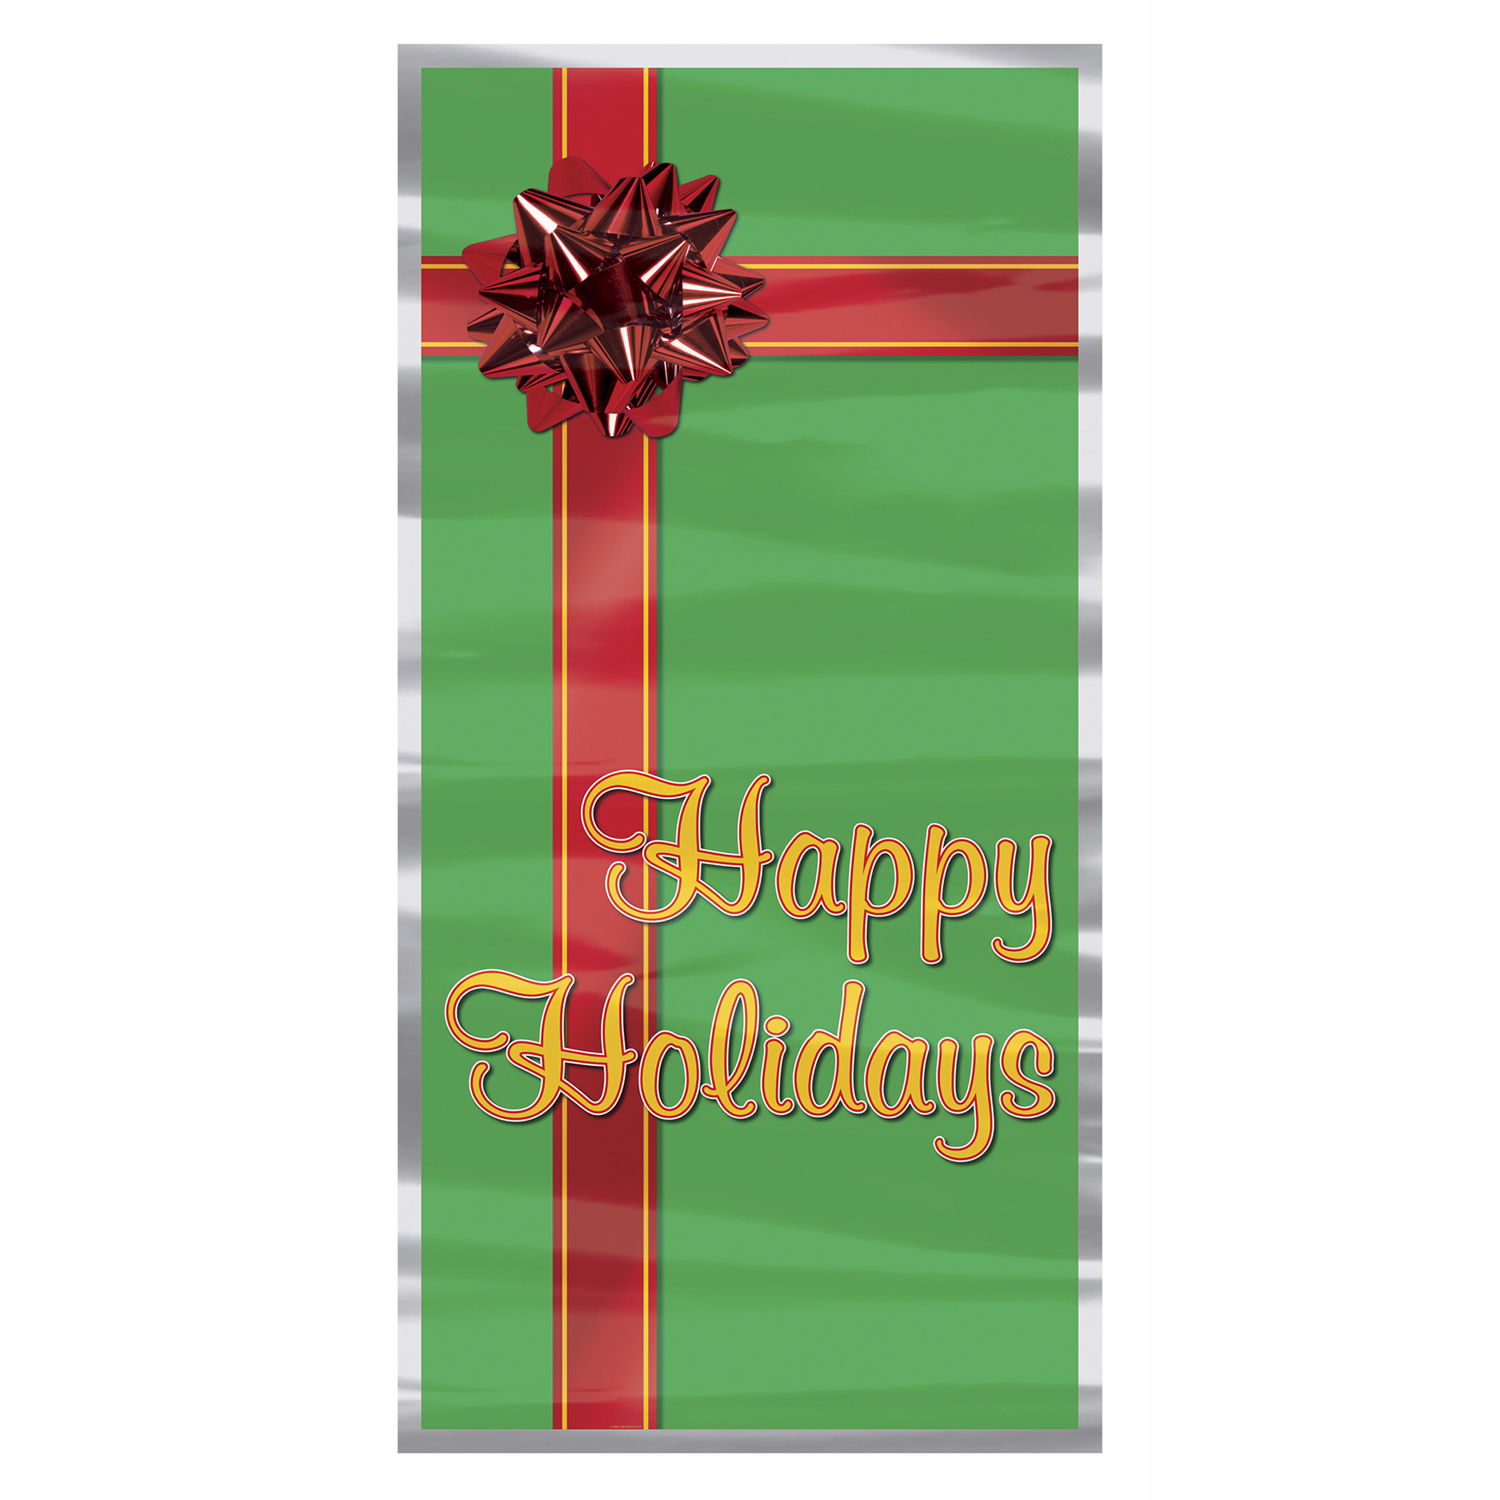 Christmas Present Door Cover: Christmas Happy Holidays Gift Present Holiday Door Cover